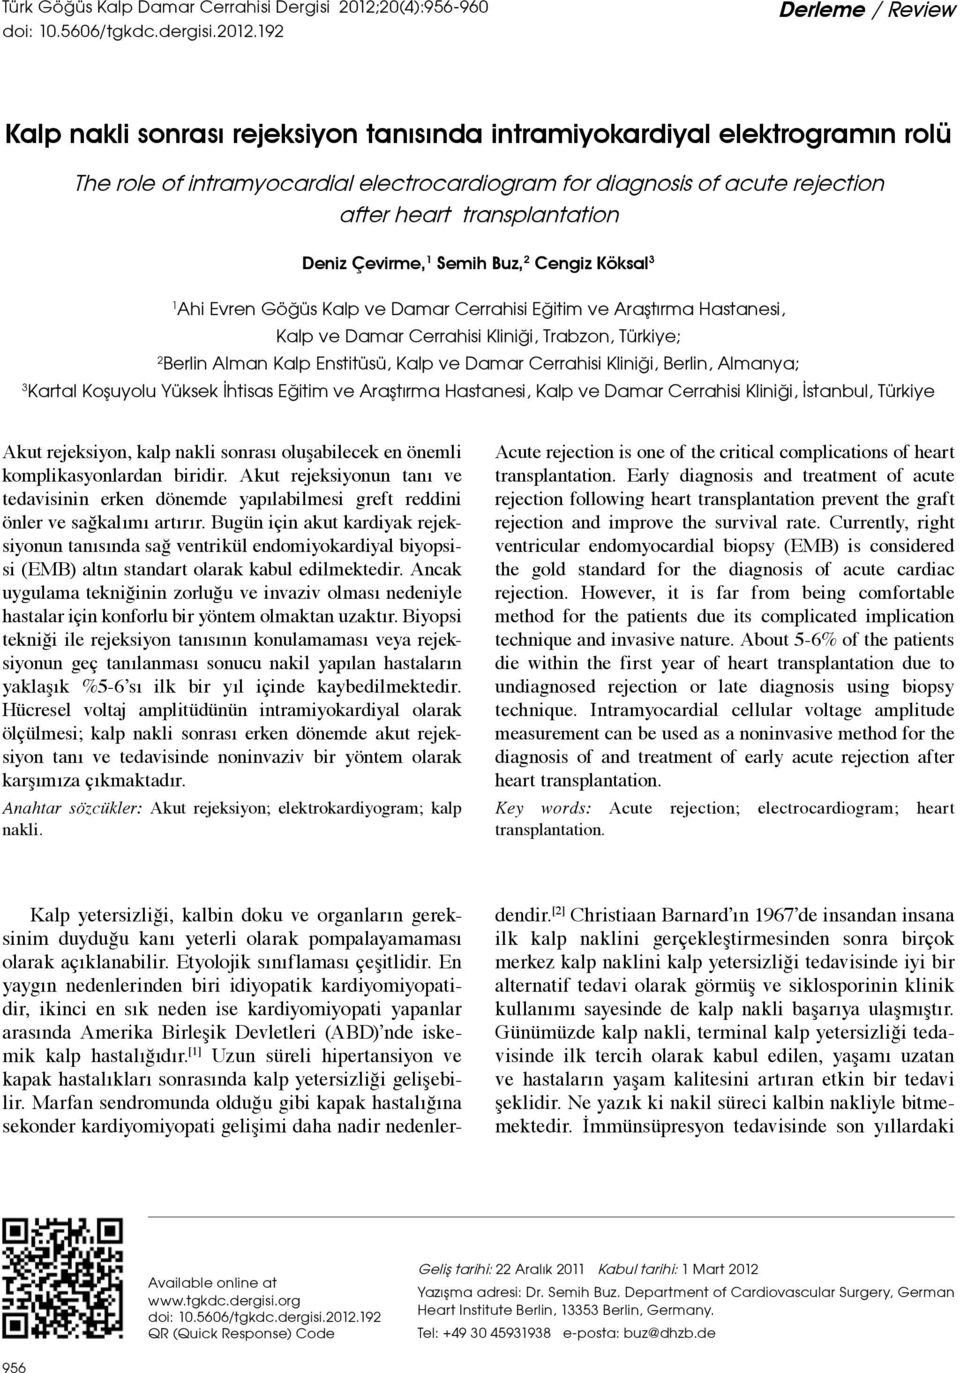 192 Derleme / Review Kalp nakli sonrası rejeksiyon tanısında intramiyokardiyal elektrogramın rolü The role of intramyocardial electrocardiogram for diagnosis of acute rejection after heart